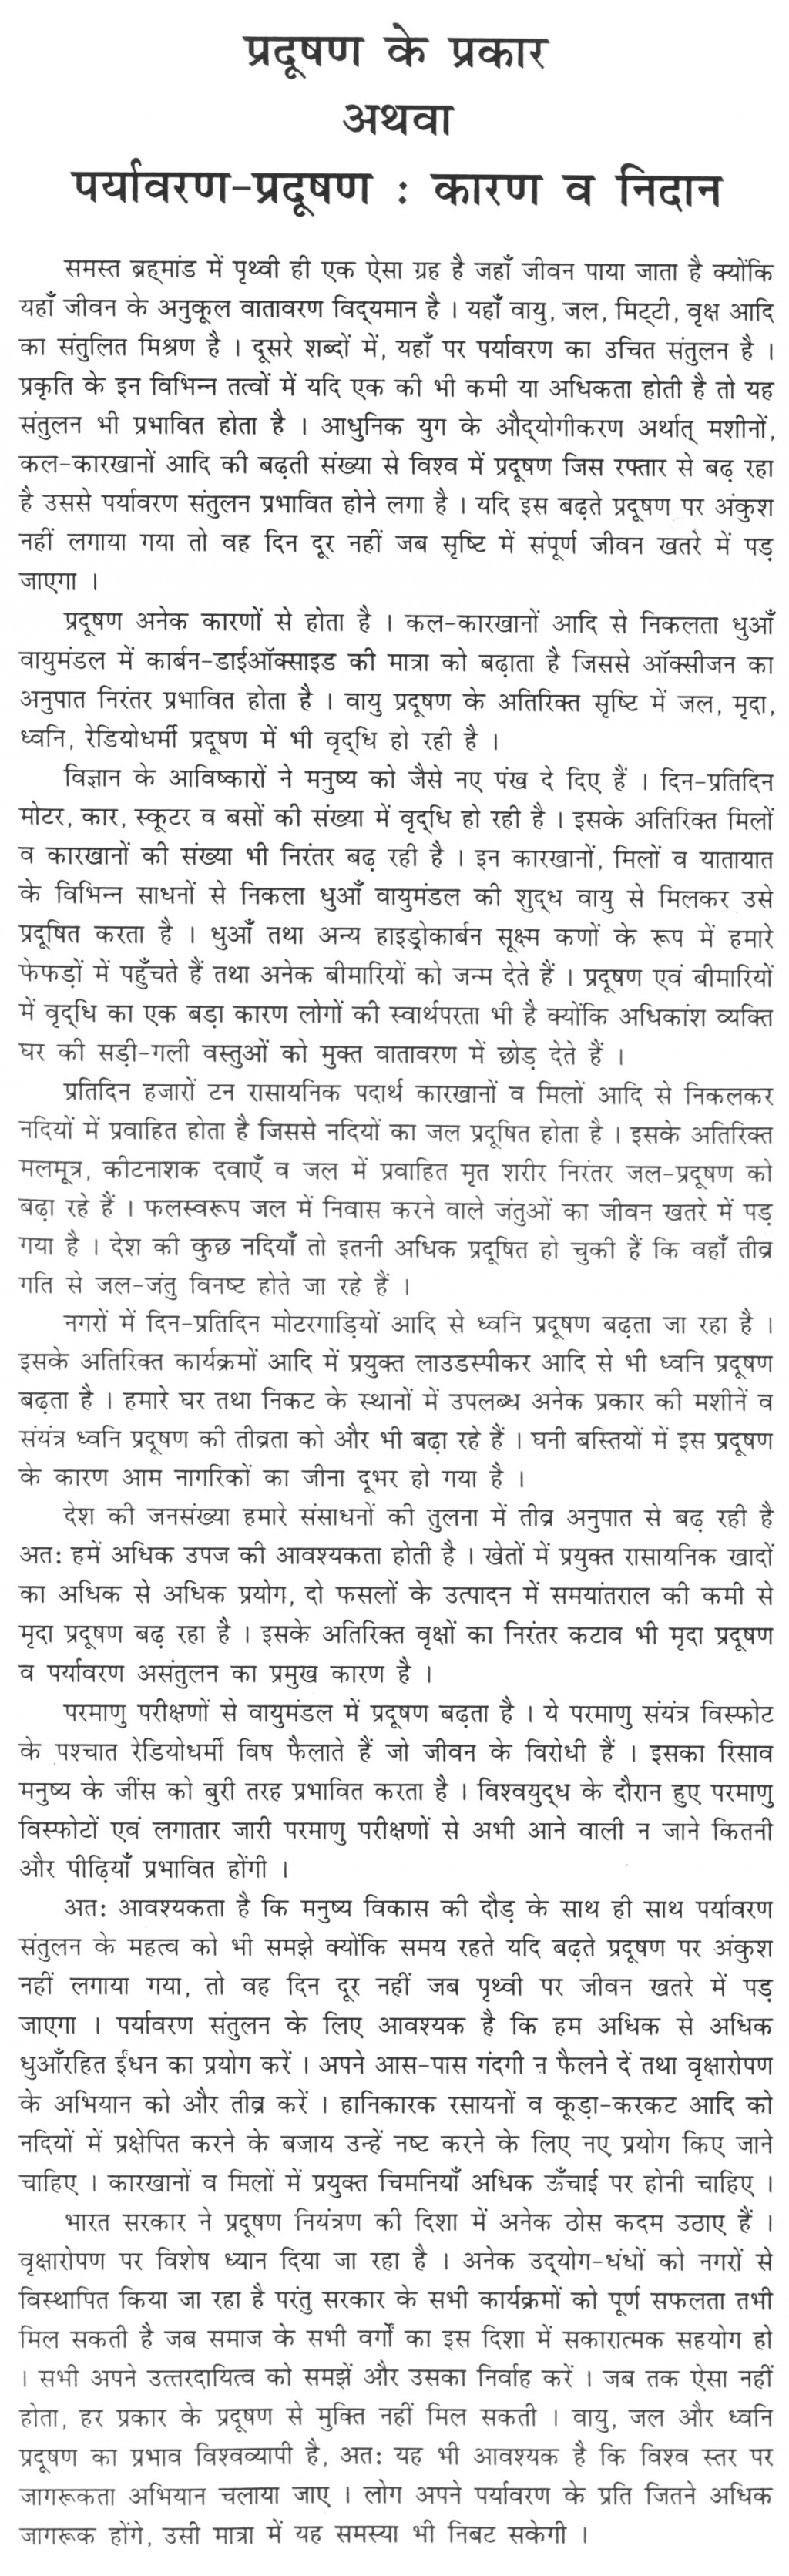 014 Good Habits Essay In Hindi Exceptional And Bad Healthy Eating Large